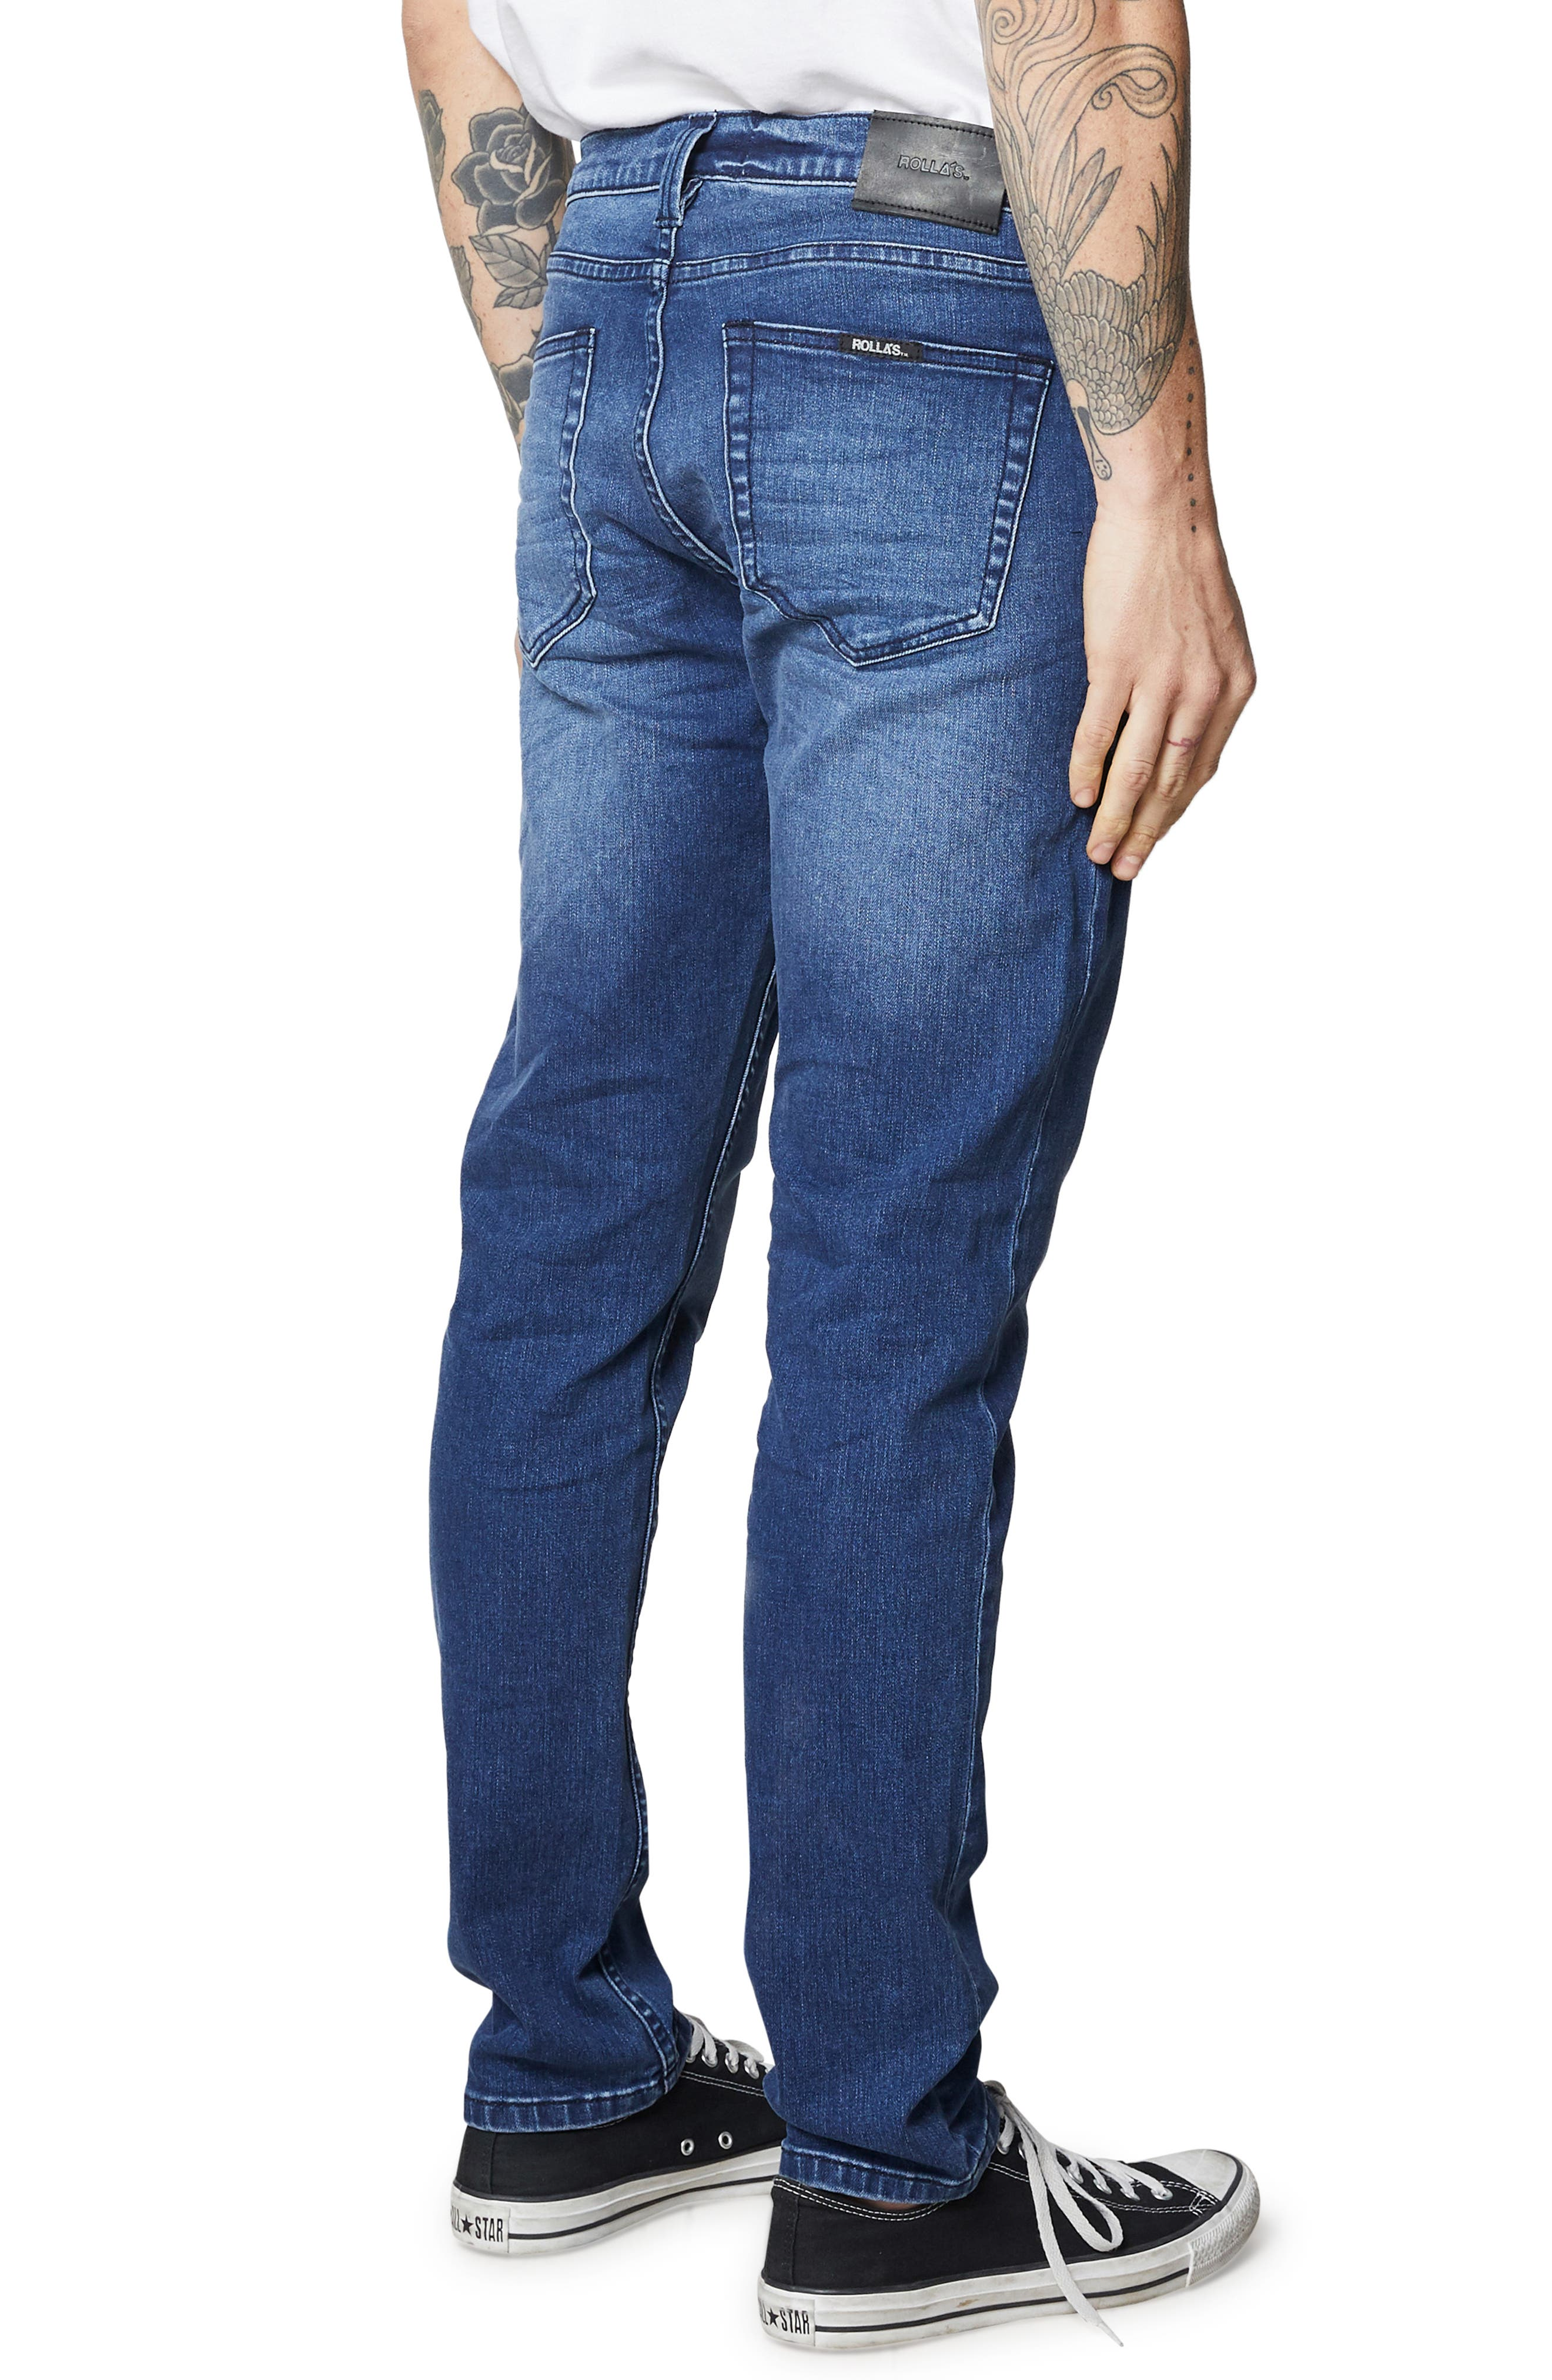 ROLLA'S,                             Tim Slims Slim Fit Jeans,                             Alternate thumbnail 5, color,                             FOSTERS BLUE